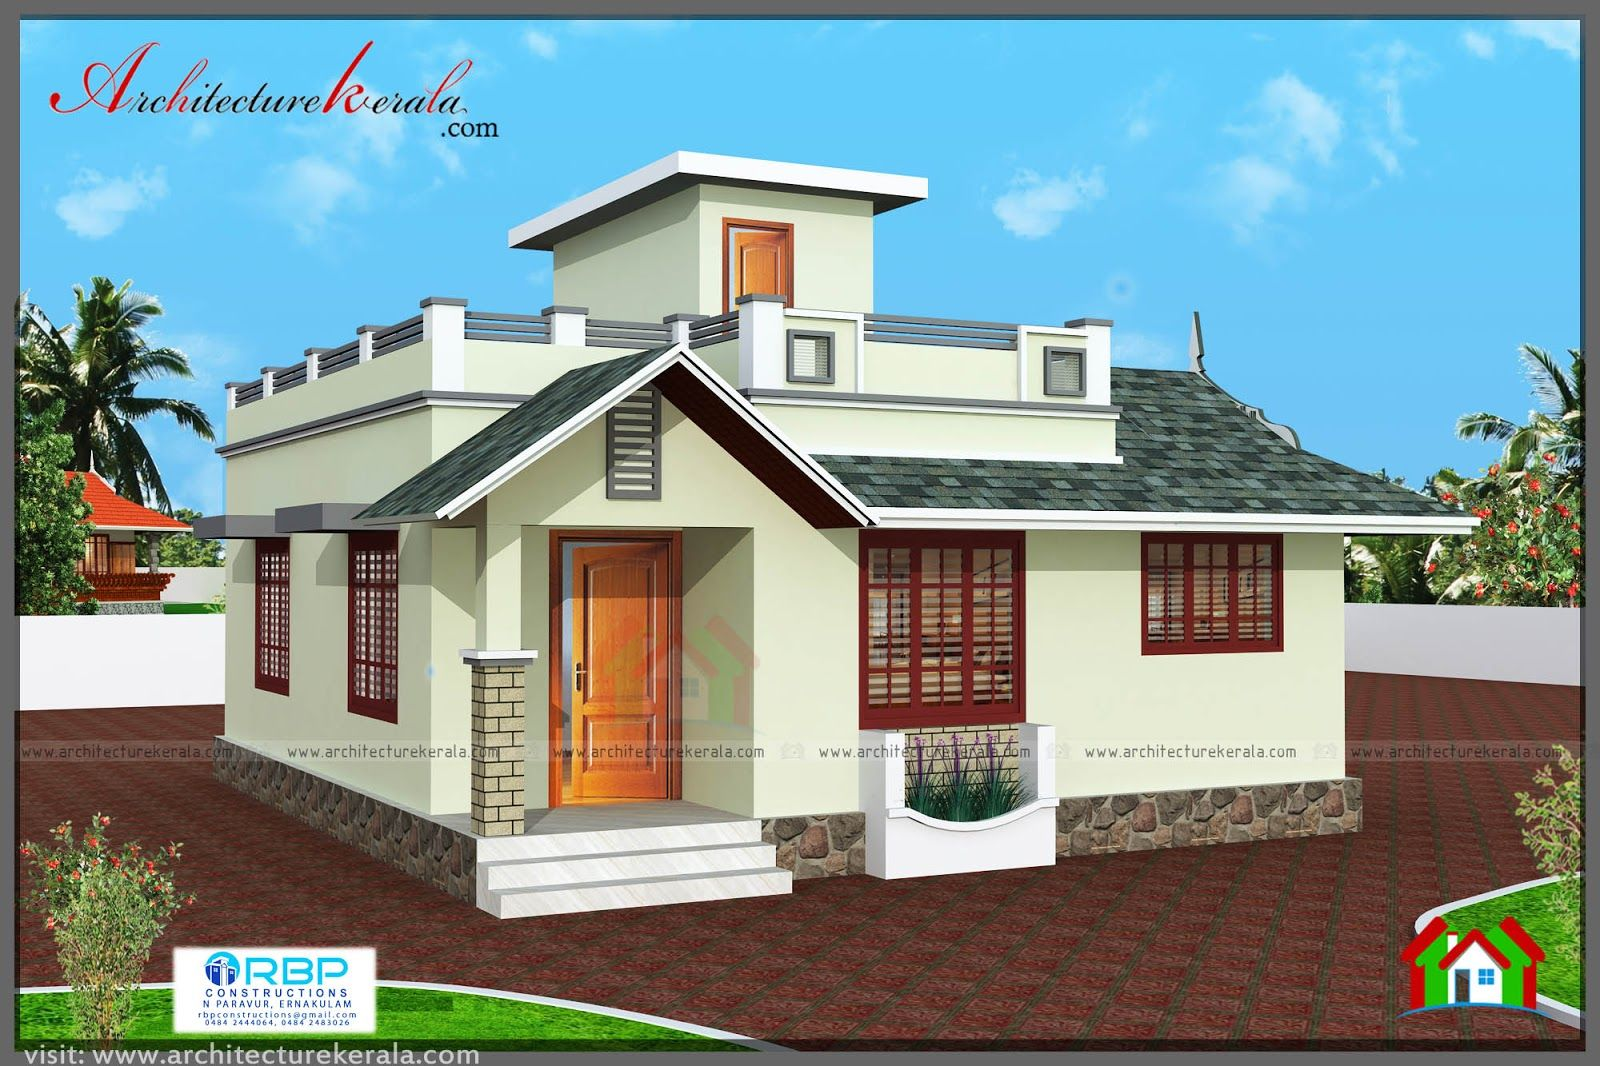 Image Result For 700 Square Foot House 2 Bedroom House Plans Small House Roof Design House Roof Design,Color Personality Test Results Blue